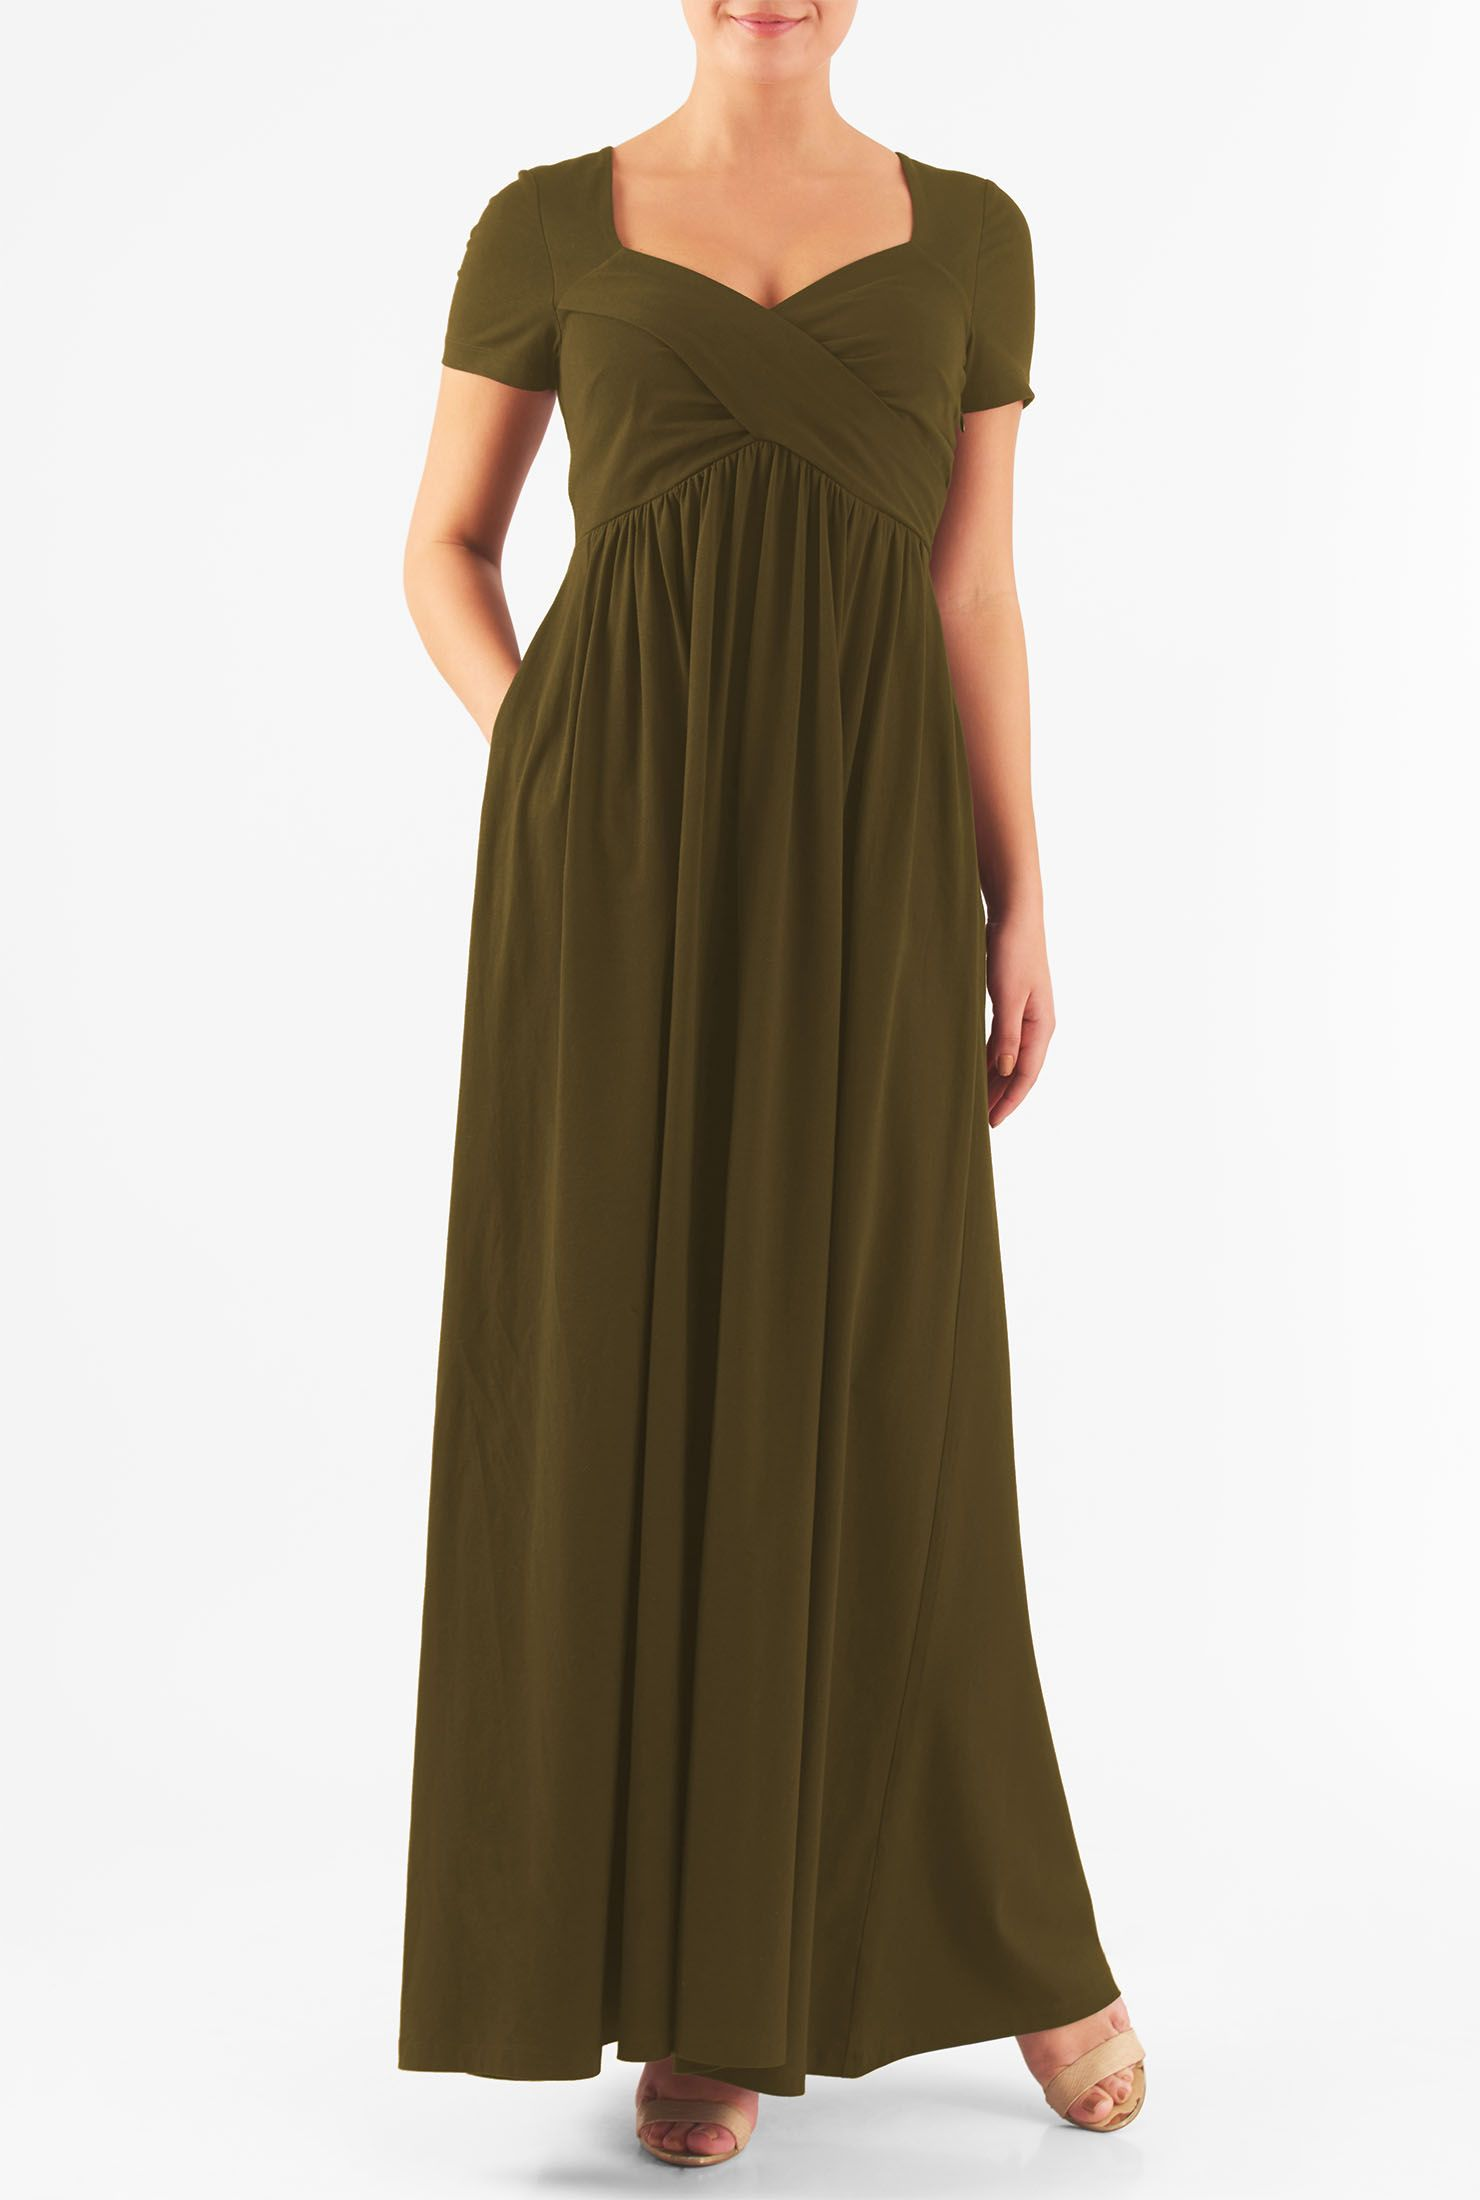 579a60cf1002 A cross-over bodice and ruched pleats accentuate the angled empire waist of  our maxi dress cut from a stretchy jersey knit in a fit-and-flare  silhouette.